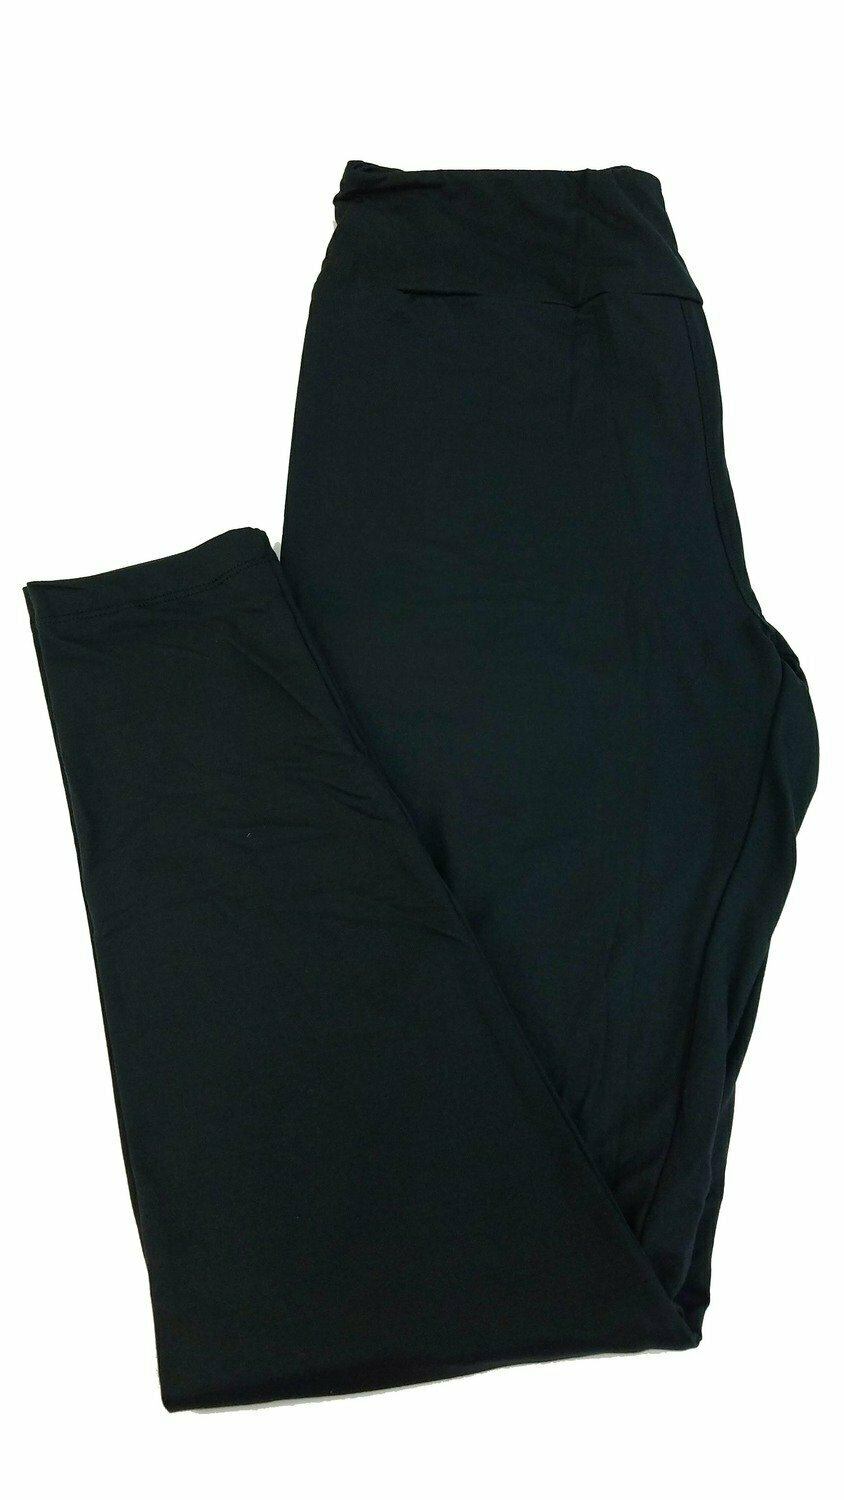 Tall Curvy 2 (TC2) Solids Jet Black LuLaRoe Leggings fits Sizes 18+